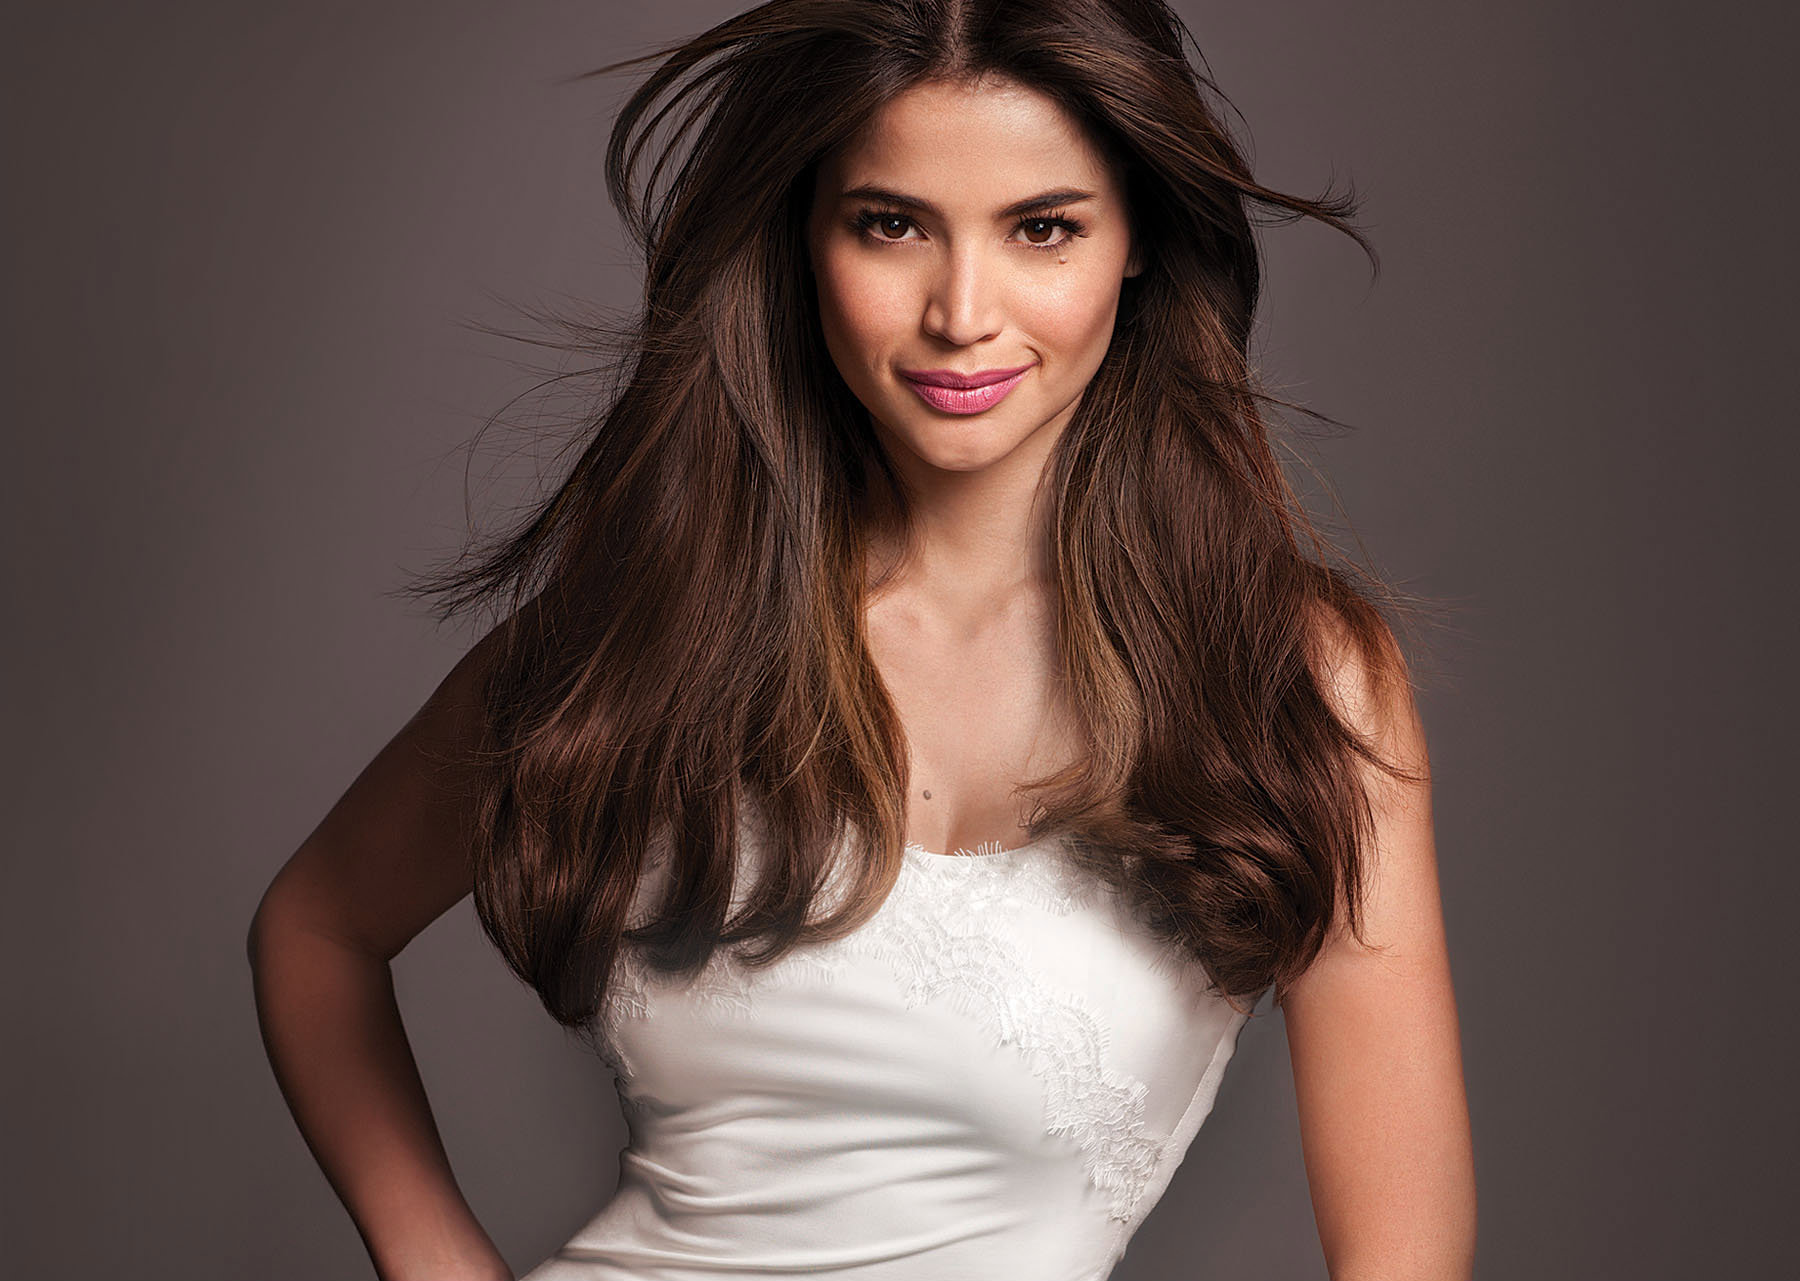 Anne Curtis Wallpaper and Background Image | 1800x1281 ...